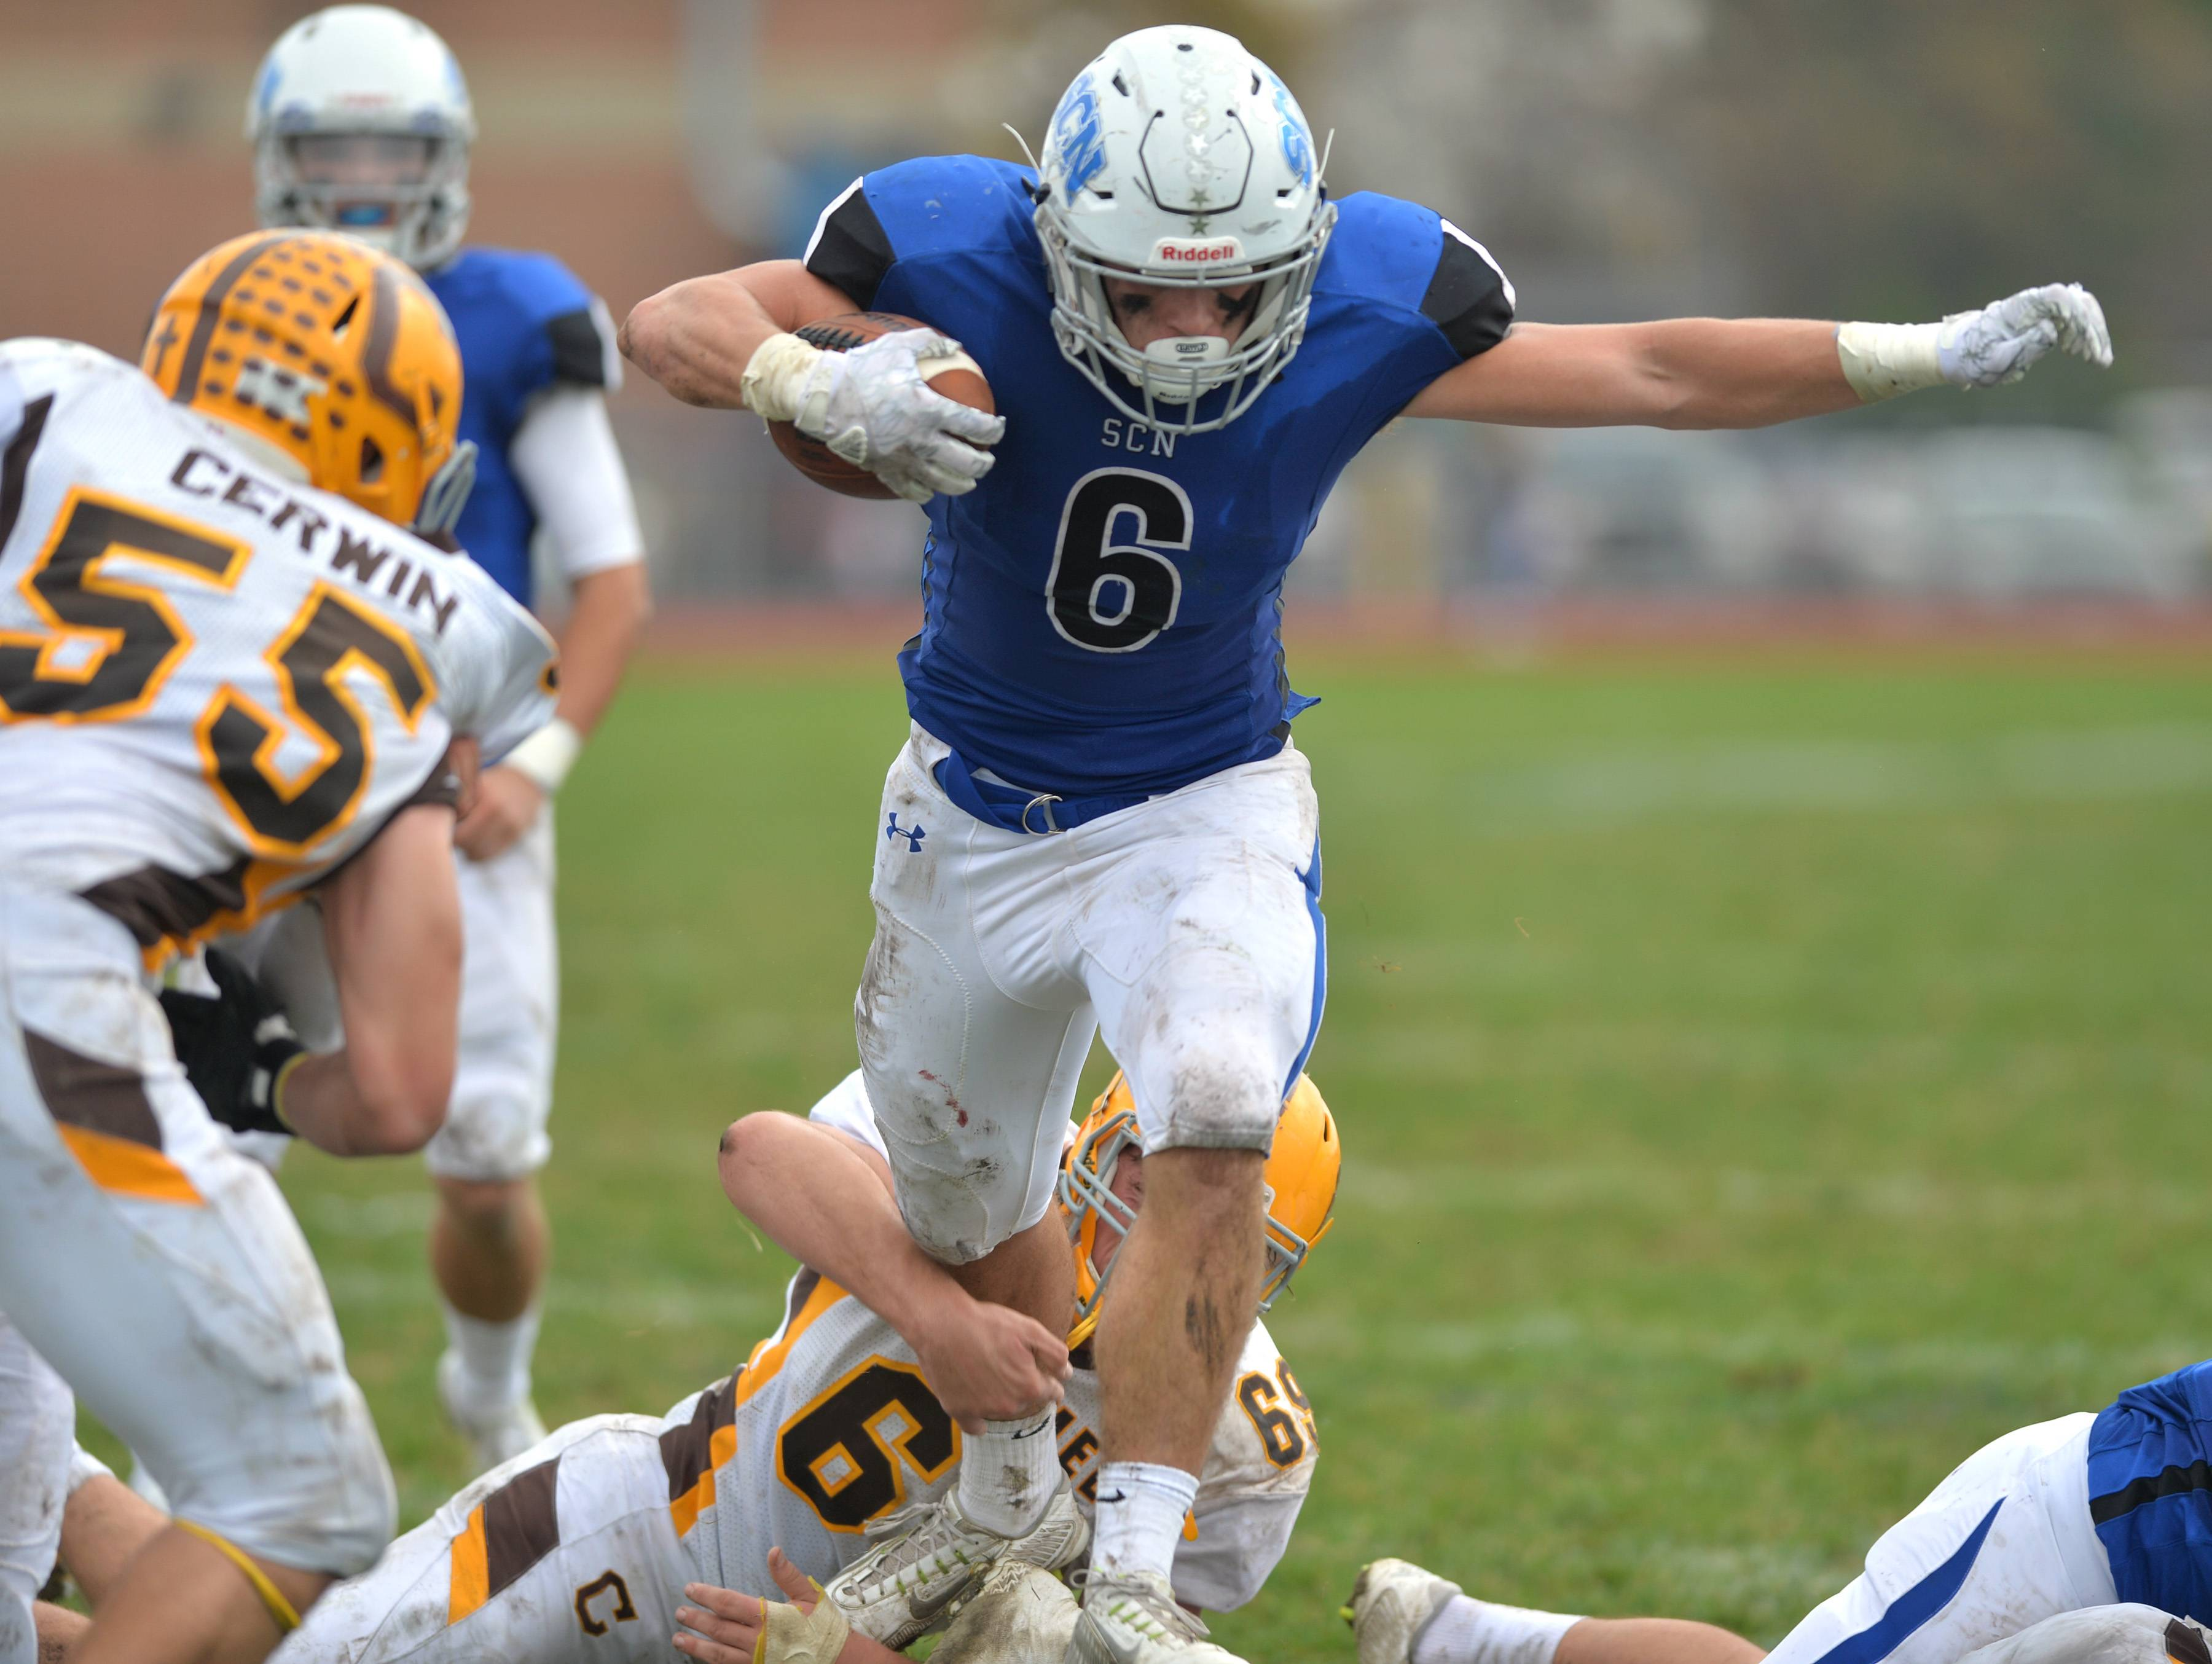 St. Charles North's Tyler Nubin carries for a touchdown against Carmel in an IHSA Class 7A playoff game Saturday in St. Charles.